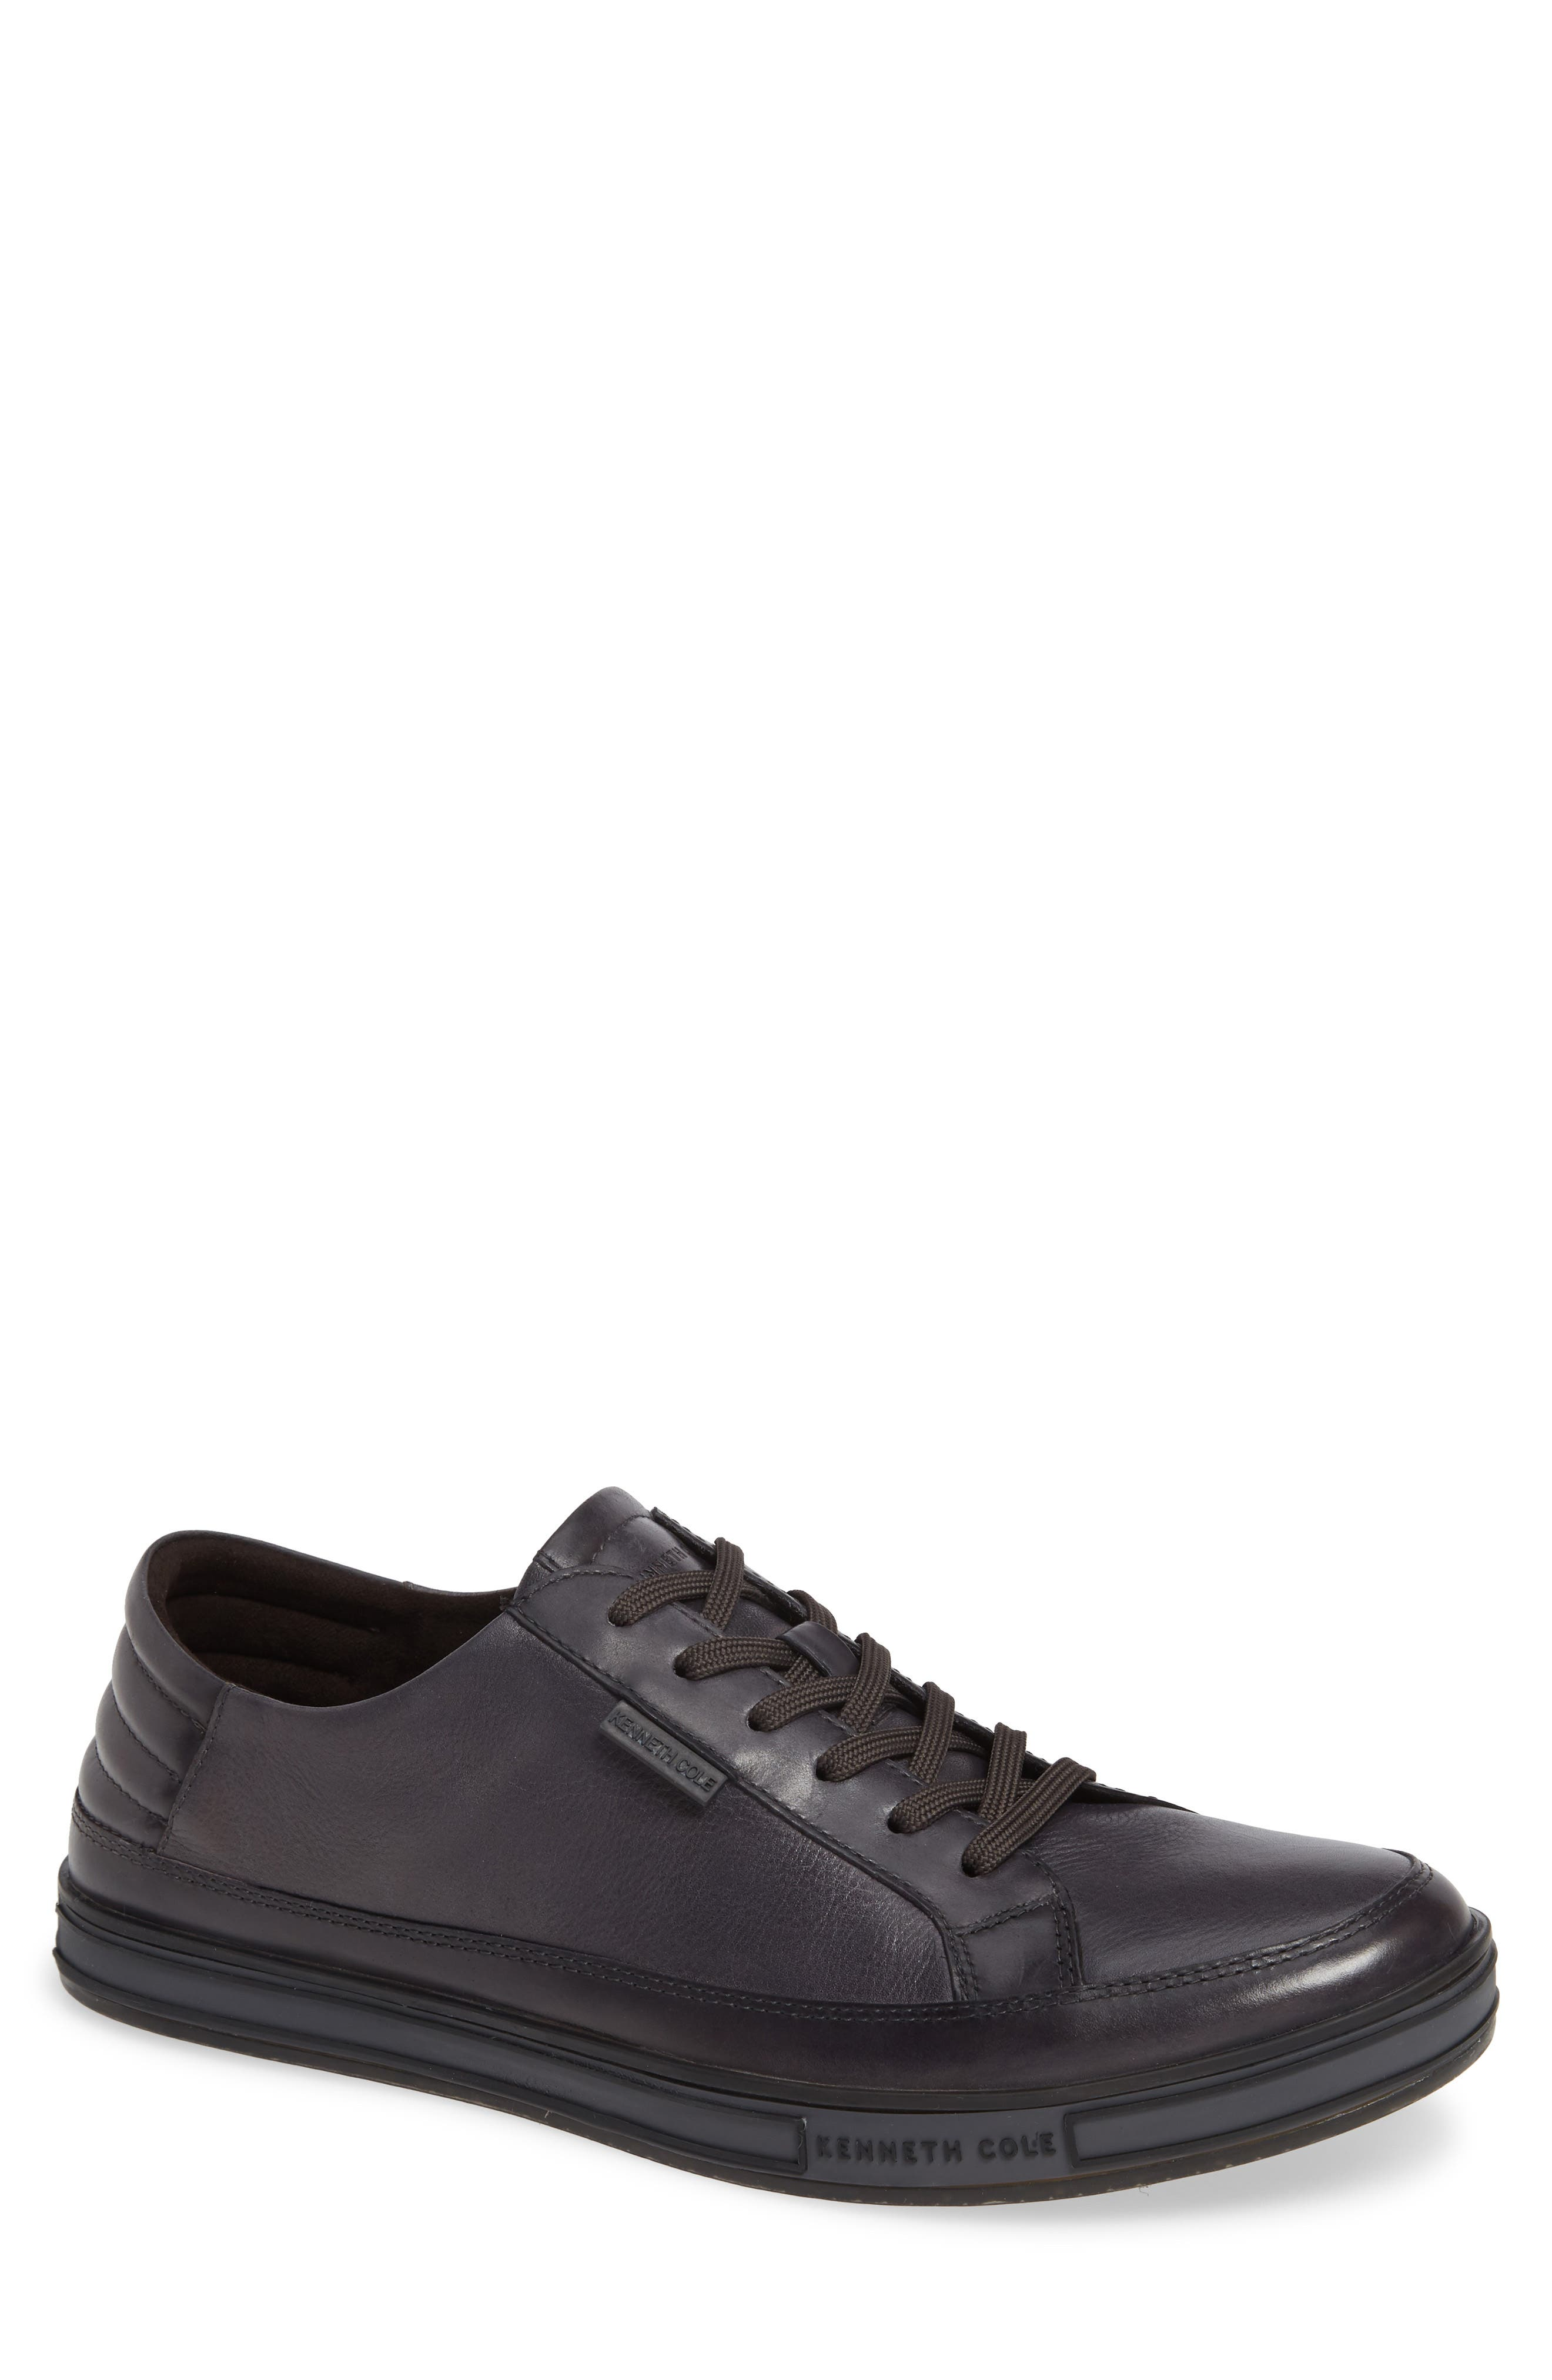 KENNETH COLE NEW YORK Brand Stand Low Top Sneaker, Main, color, GREY TUMBLED LEATHER/ LEATHER